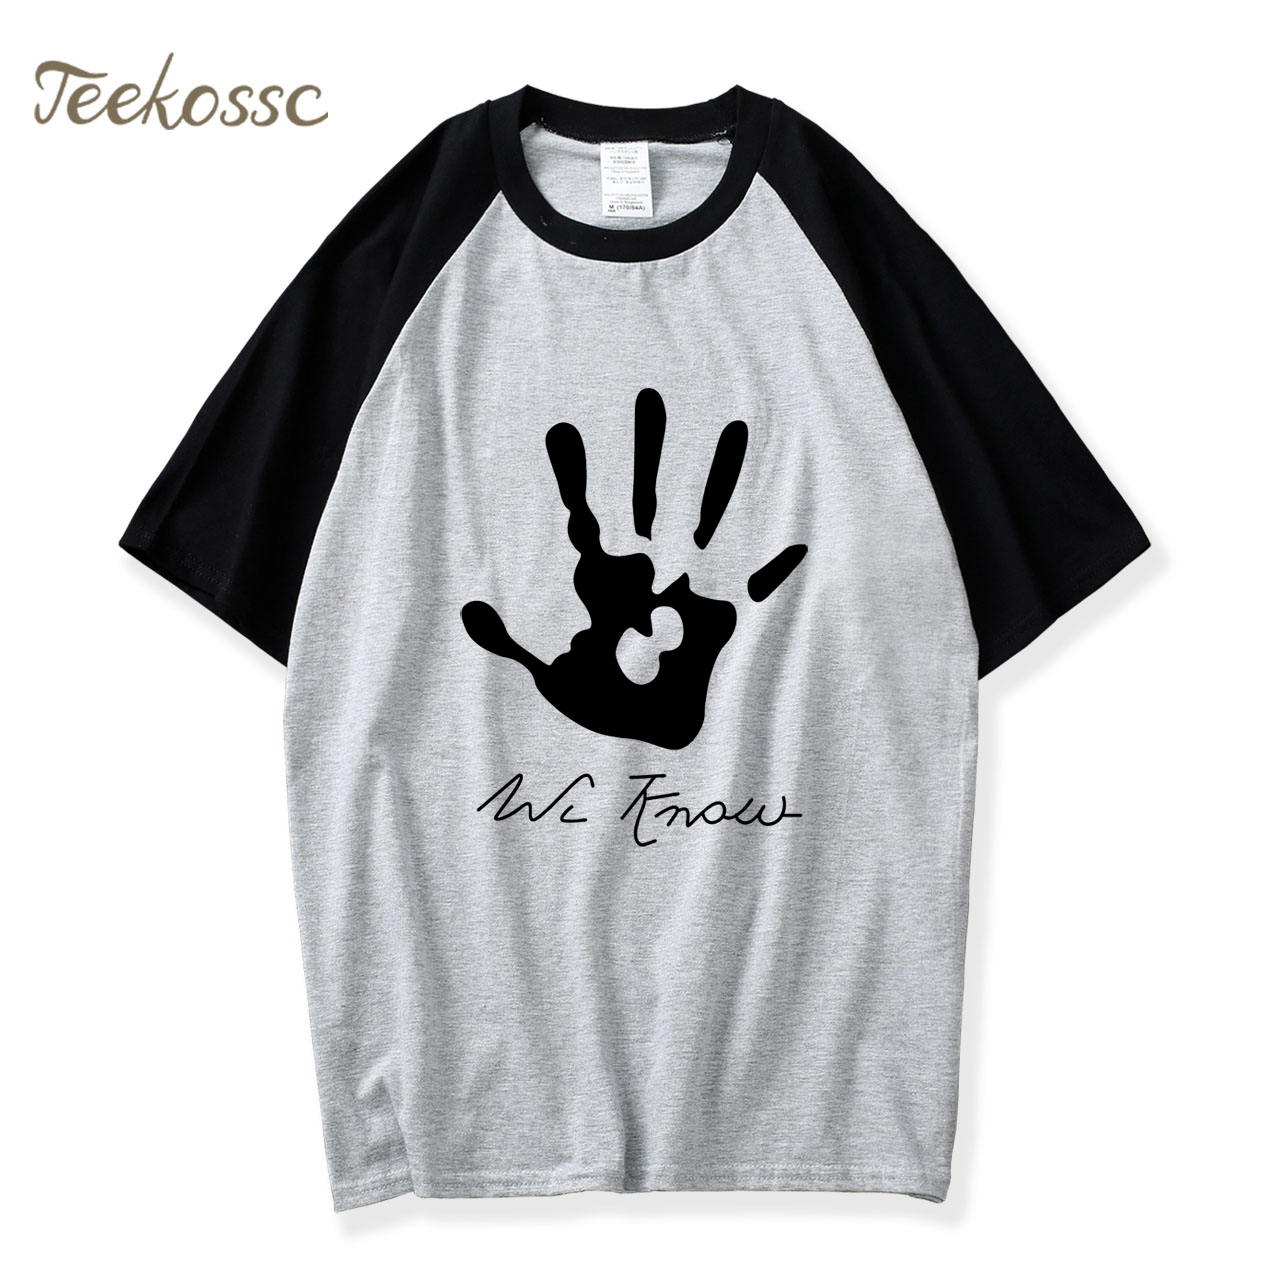 New Skyrim Dark Brotherhood We Know Hand T Shirt Men Masculinas Camisetas Hip Hop 2018 Summer Raglan 100% Cotton Men's T-Shirt